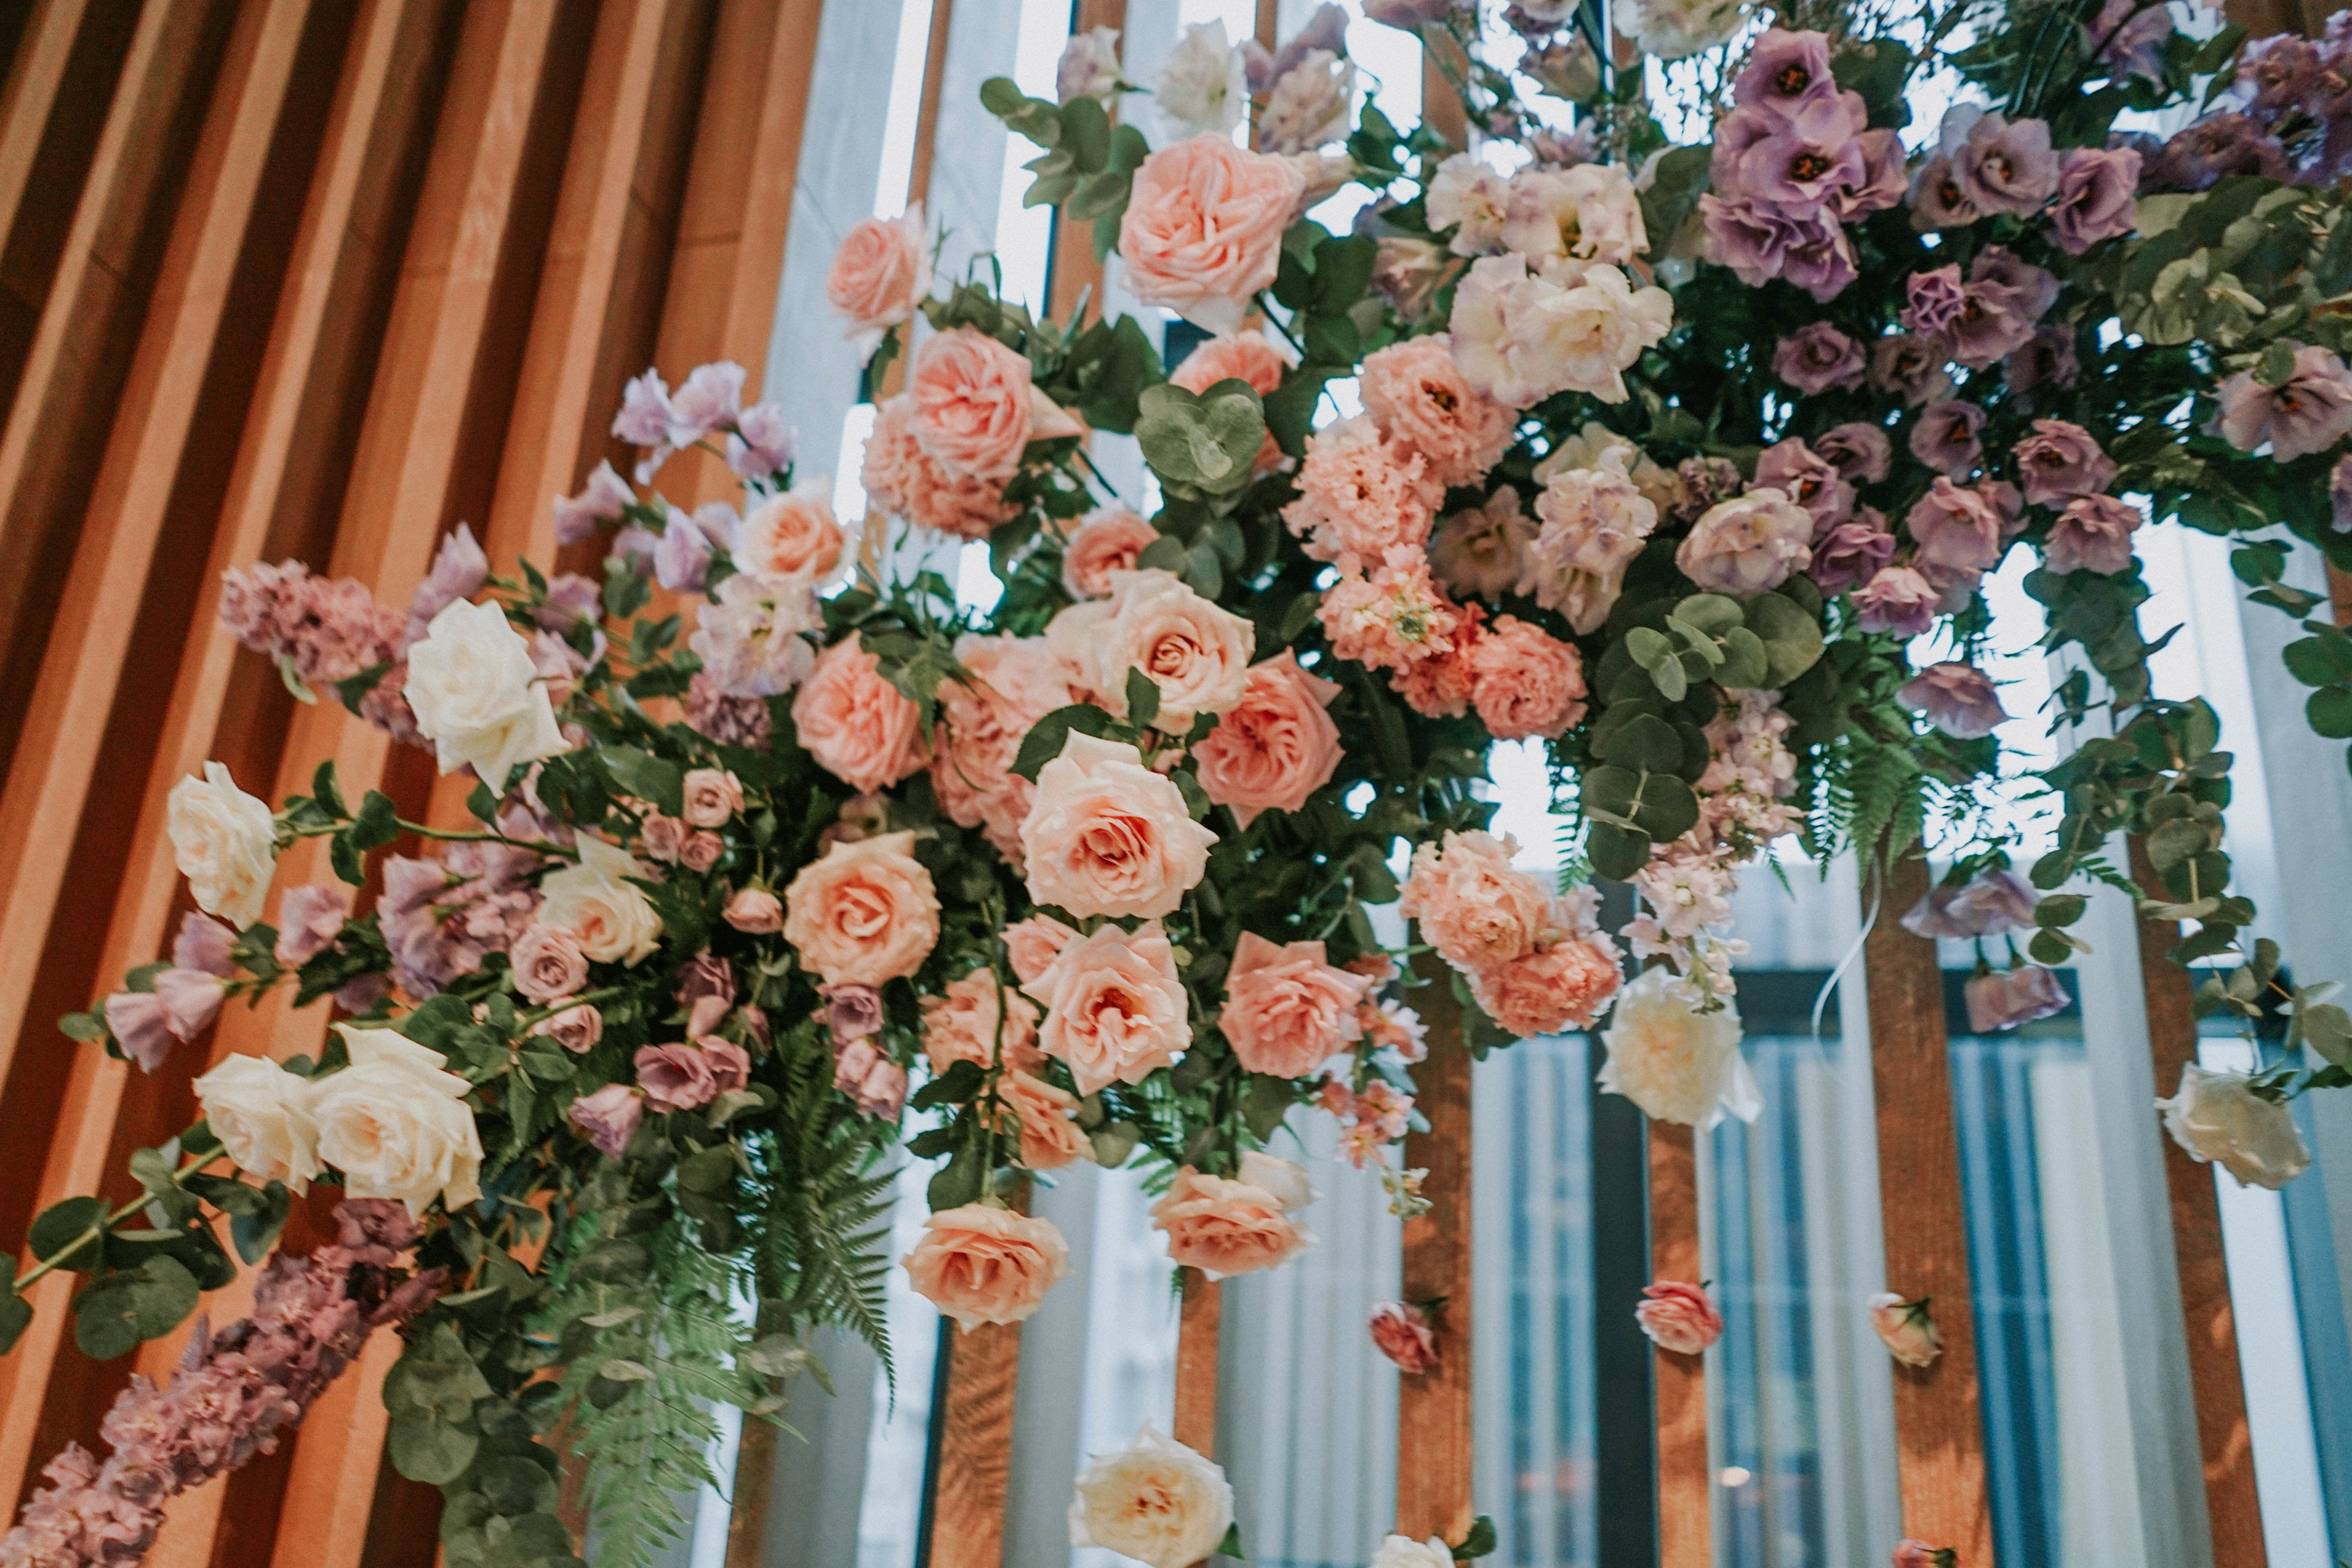 Close up of wedding floral backdrop arrangement with dainty dripping flowers hanging from the trellis at Andaz Hotel main hall